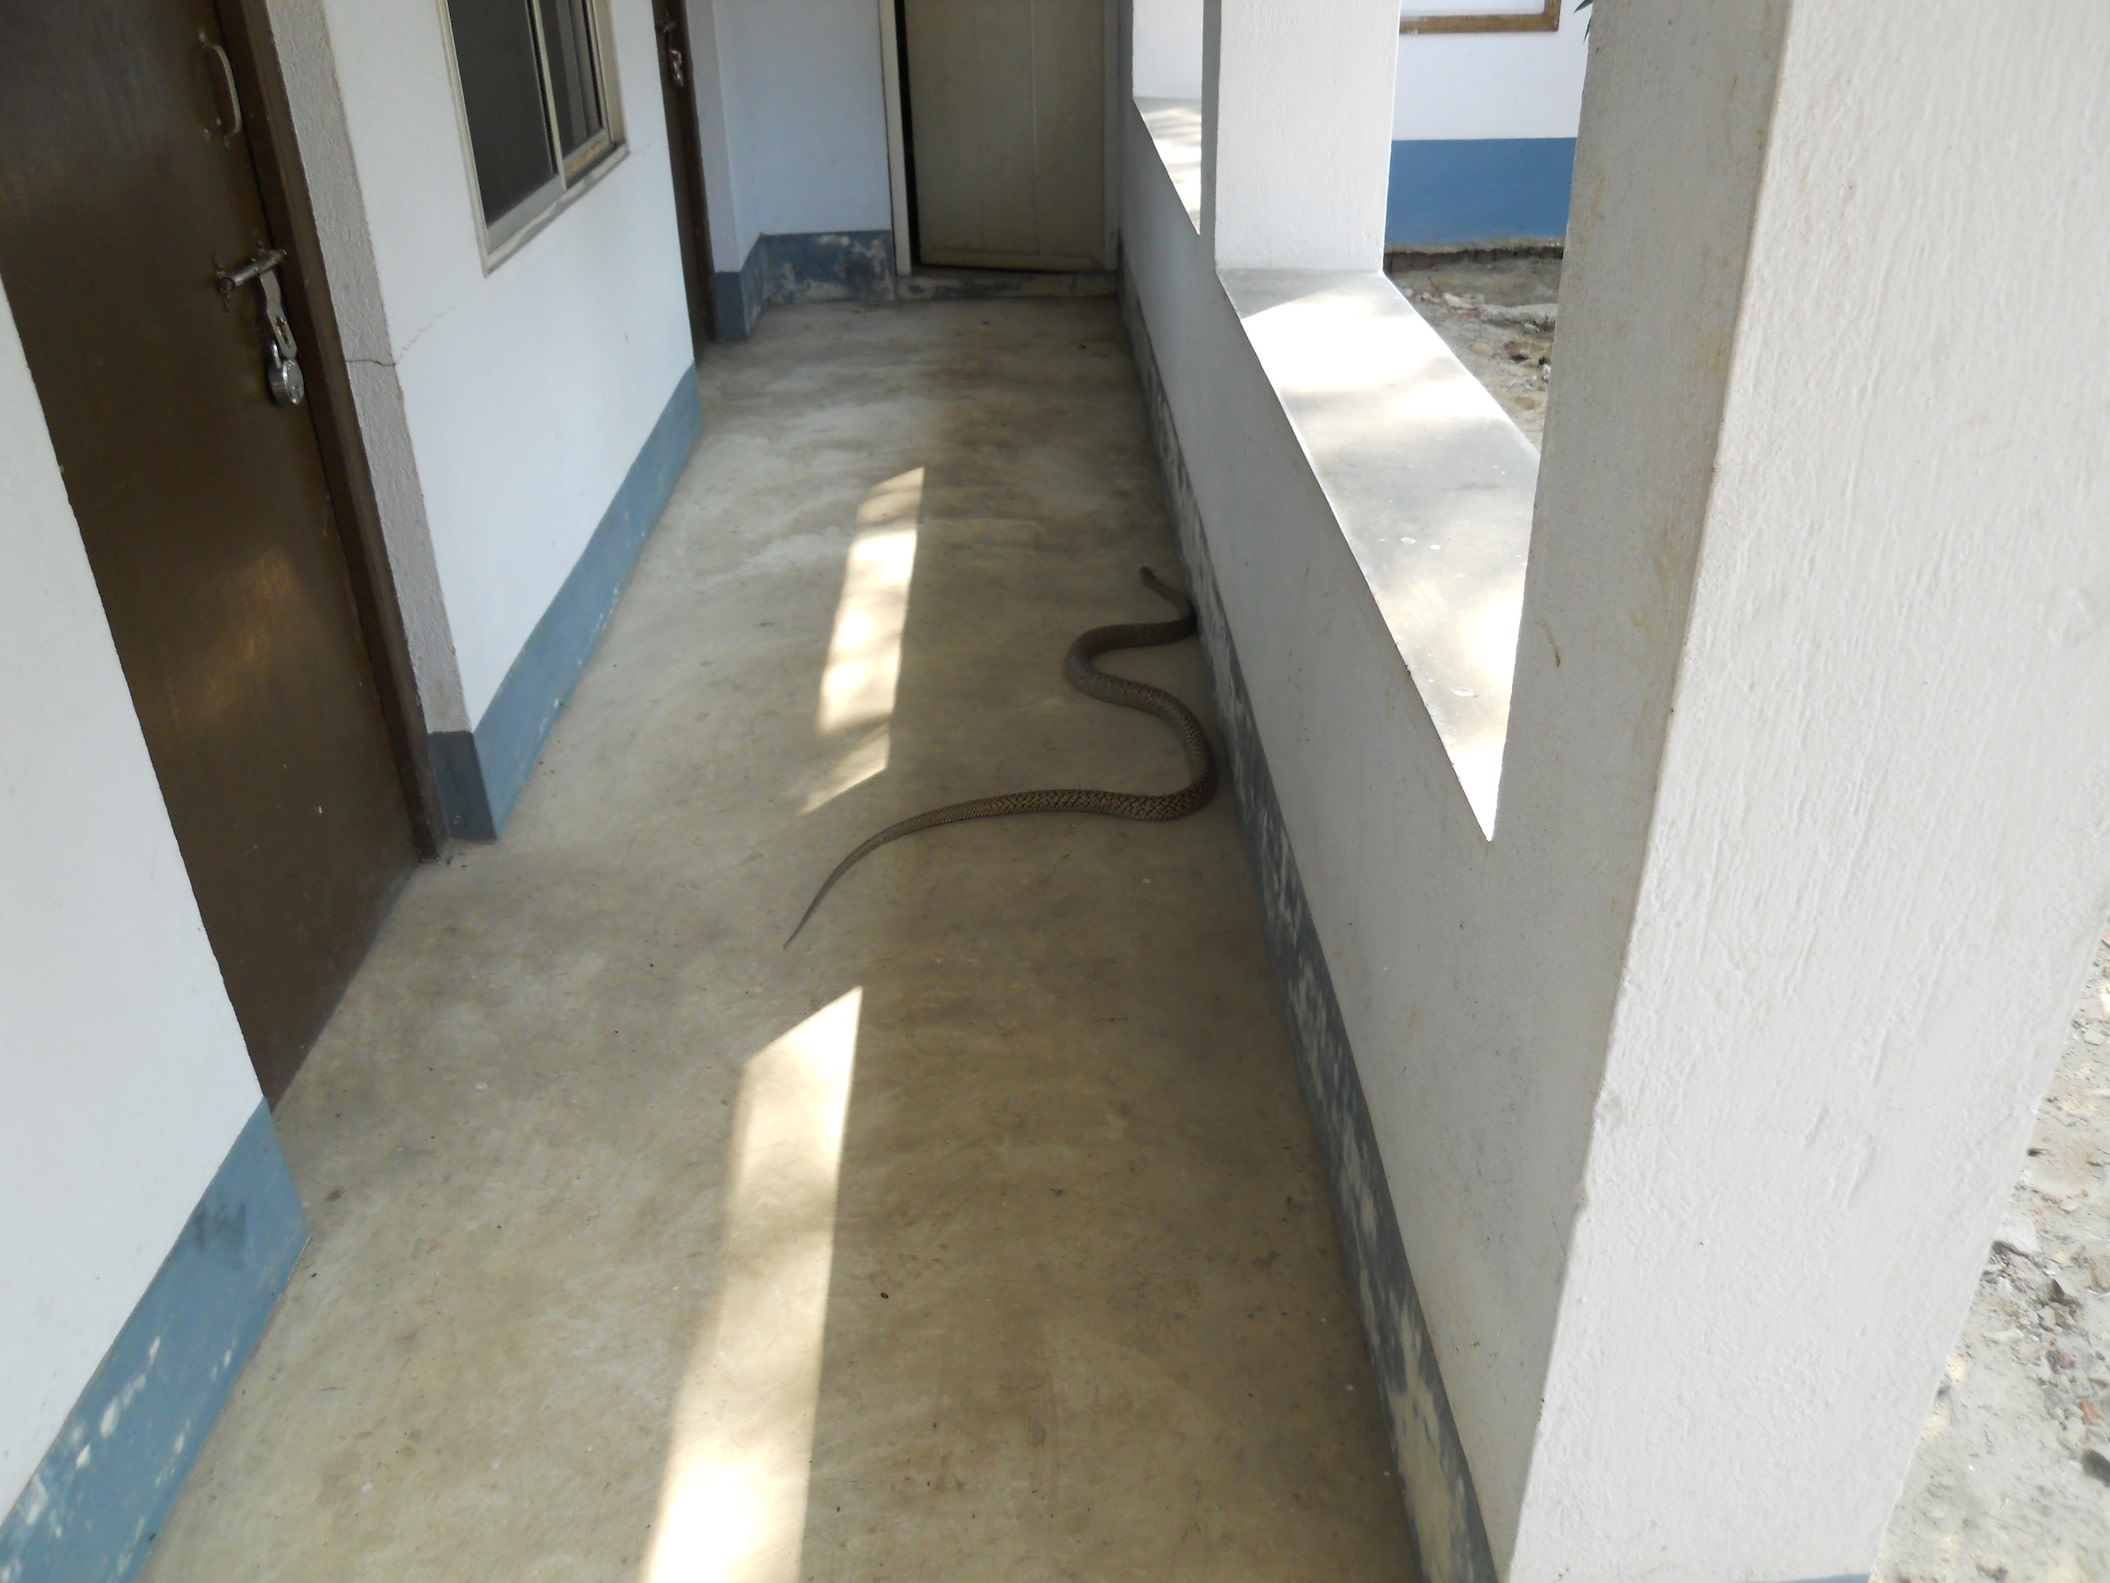 This 3 metre-long snake happily slithering around the premises of the guesthouse.